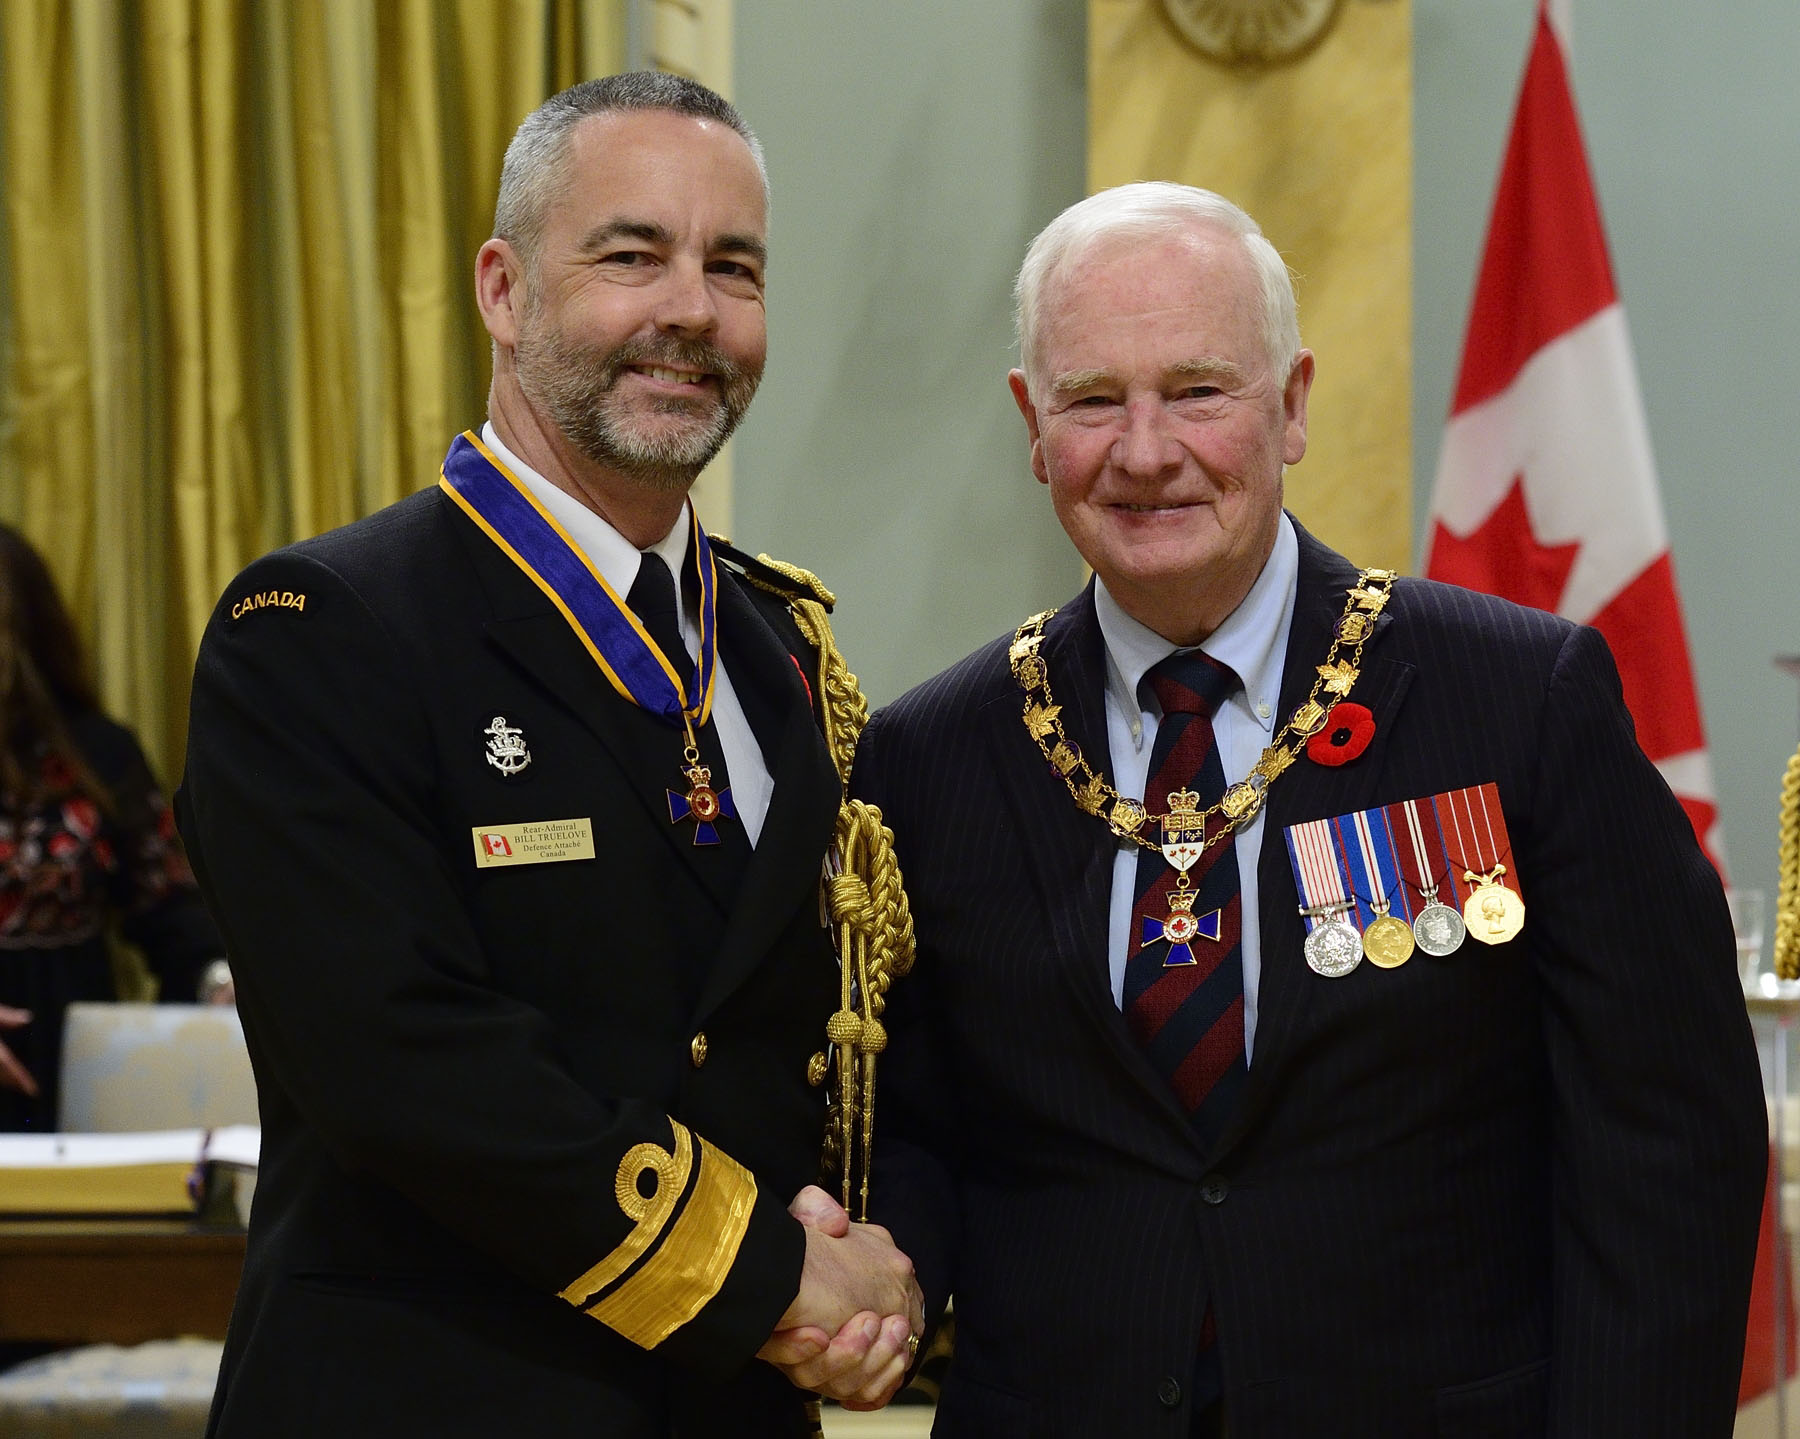 His Excellency presented the Order of Military Merit at the Commander level (C.M.M.) to Rear-Admiral William Shawn Truelove, C.M.M., C.D., Canadian Defence Liaison Staff (Washington)